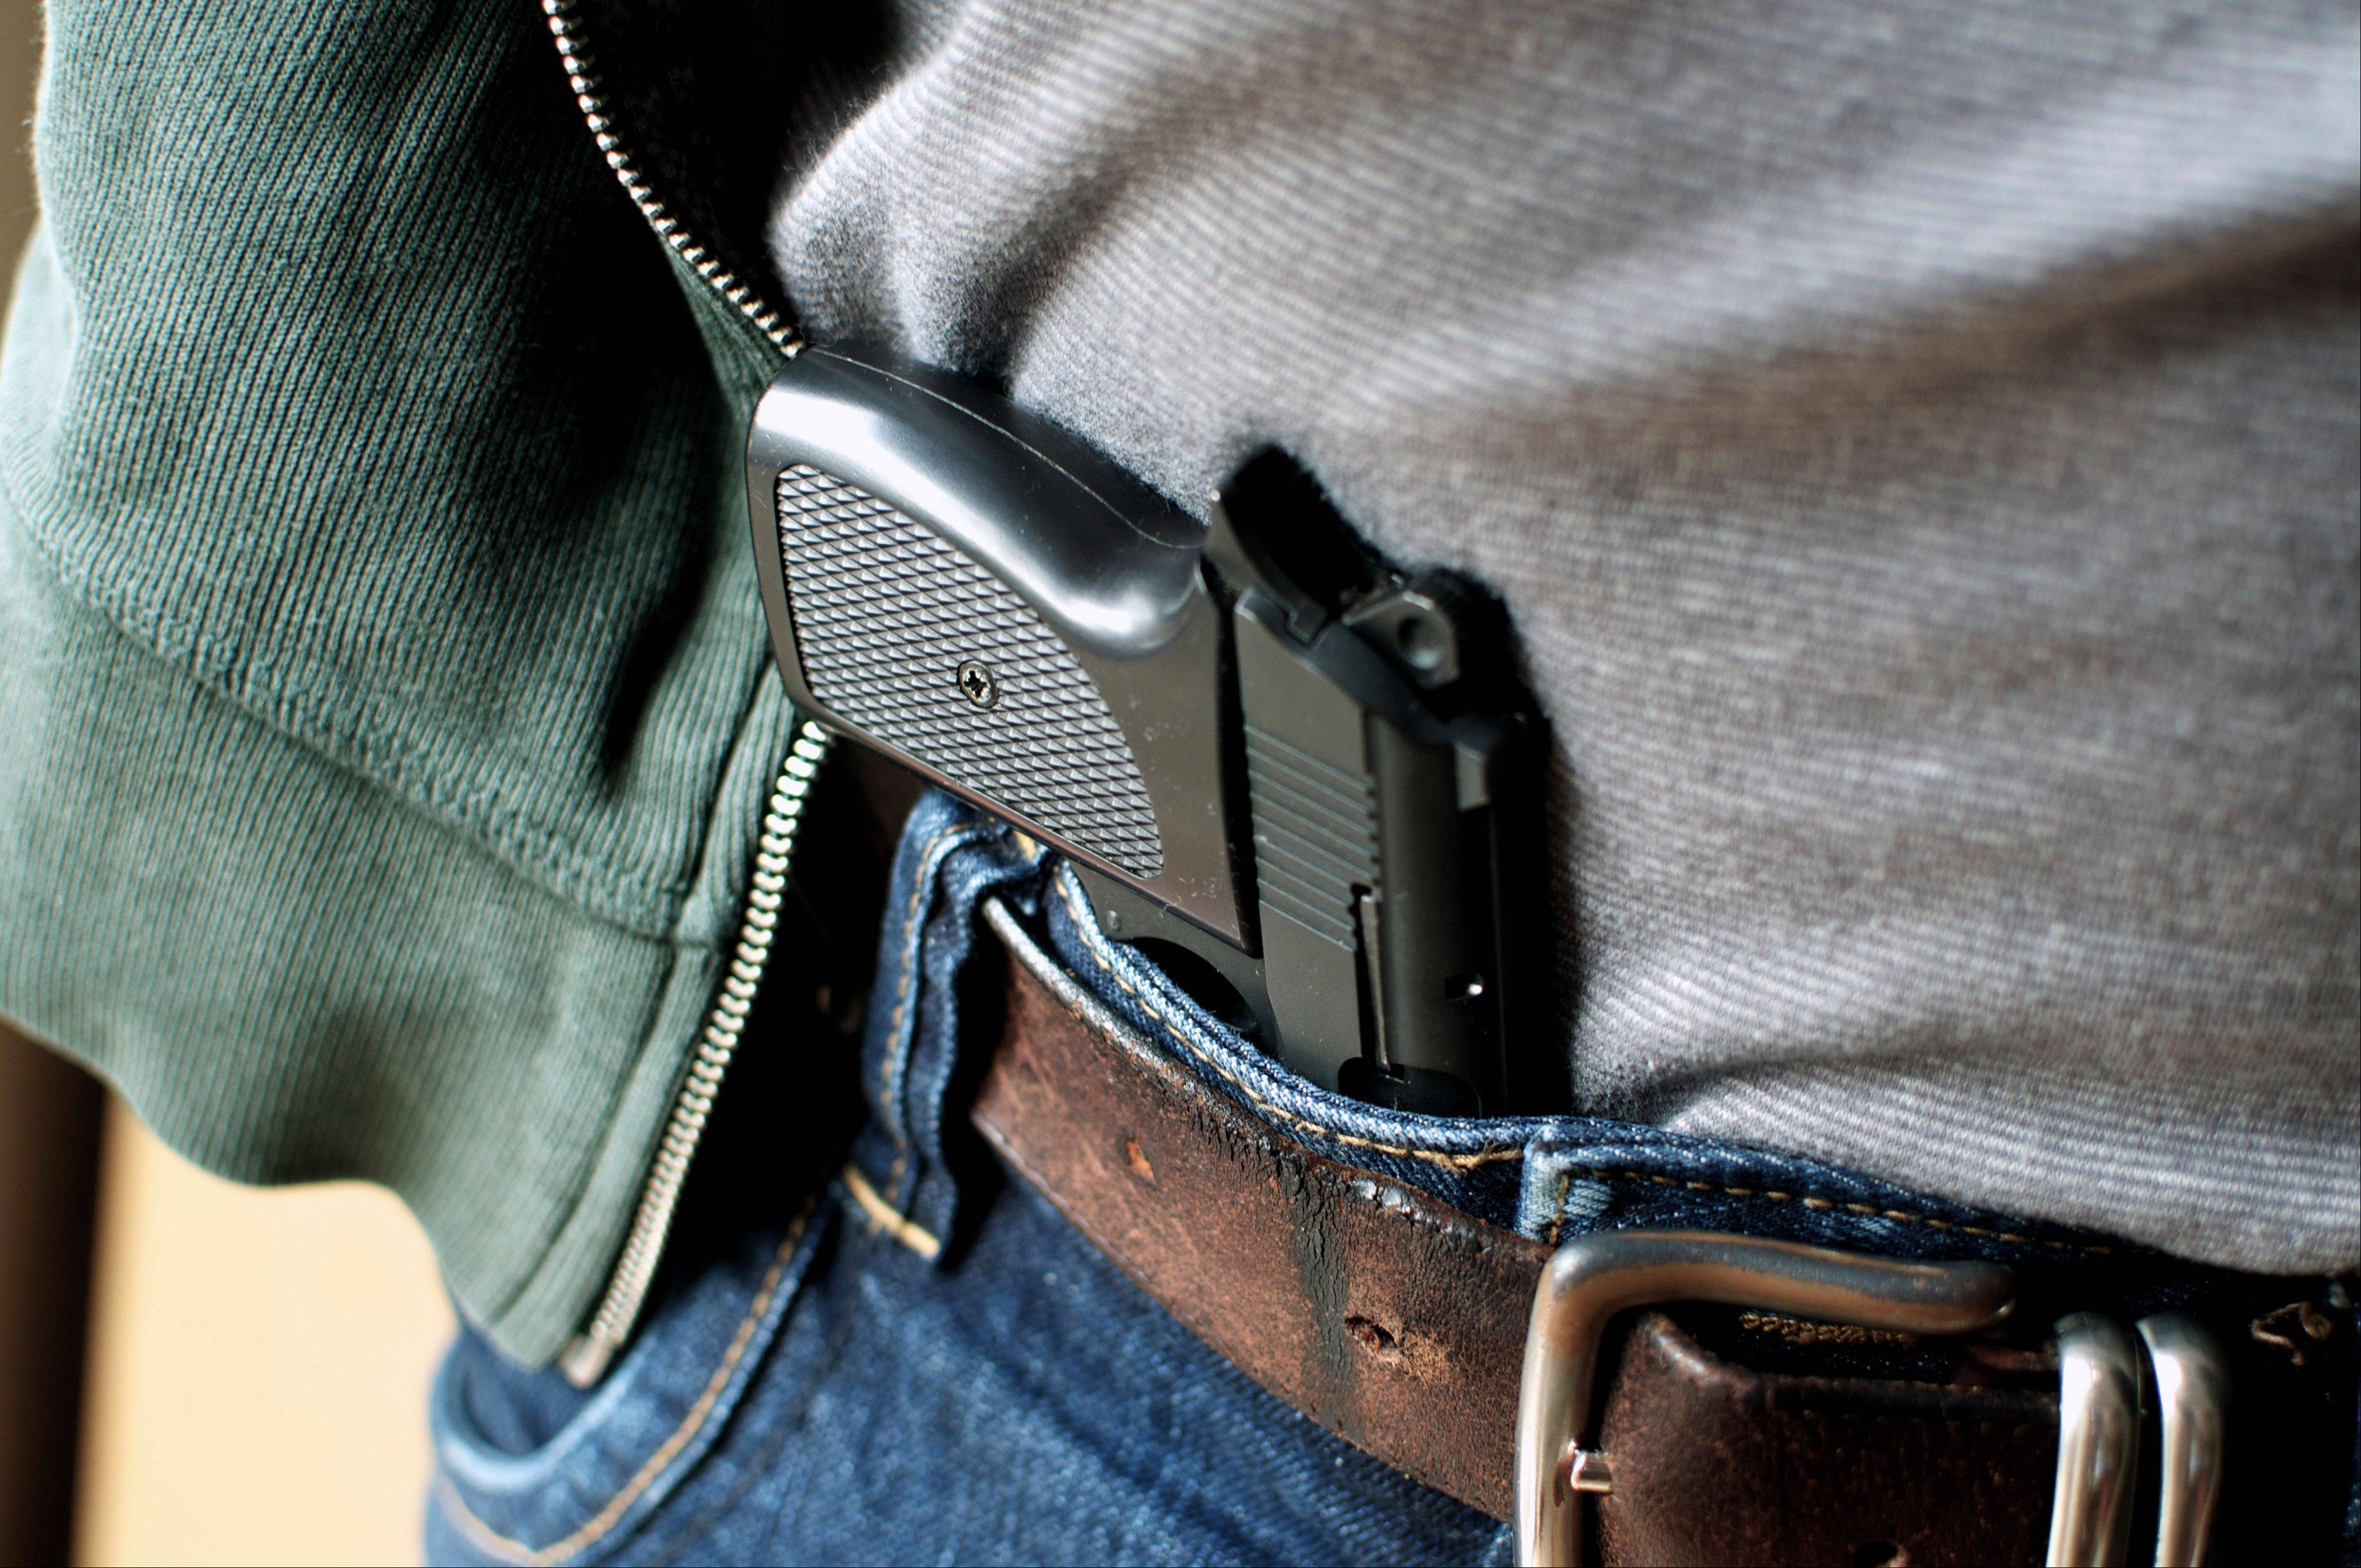 Illinois gun owners could get permits to carry concealed weapons by March.